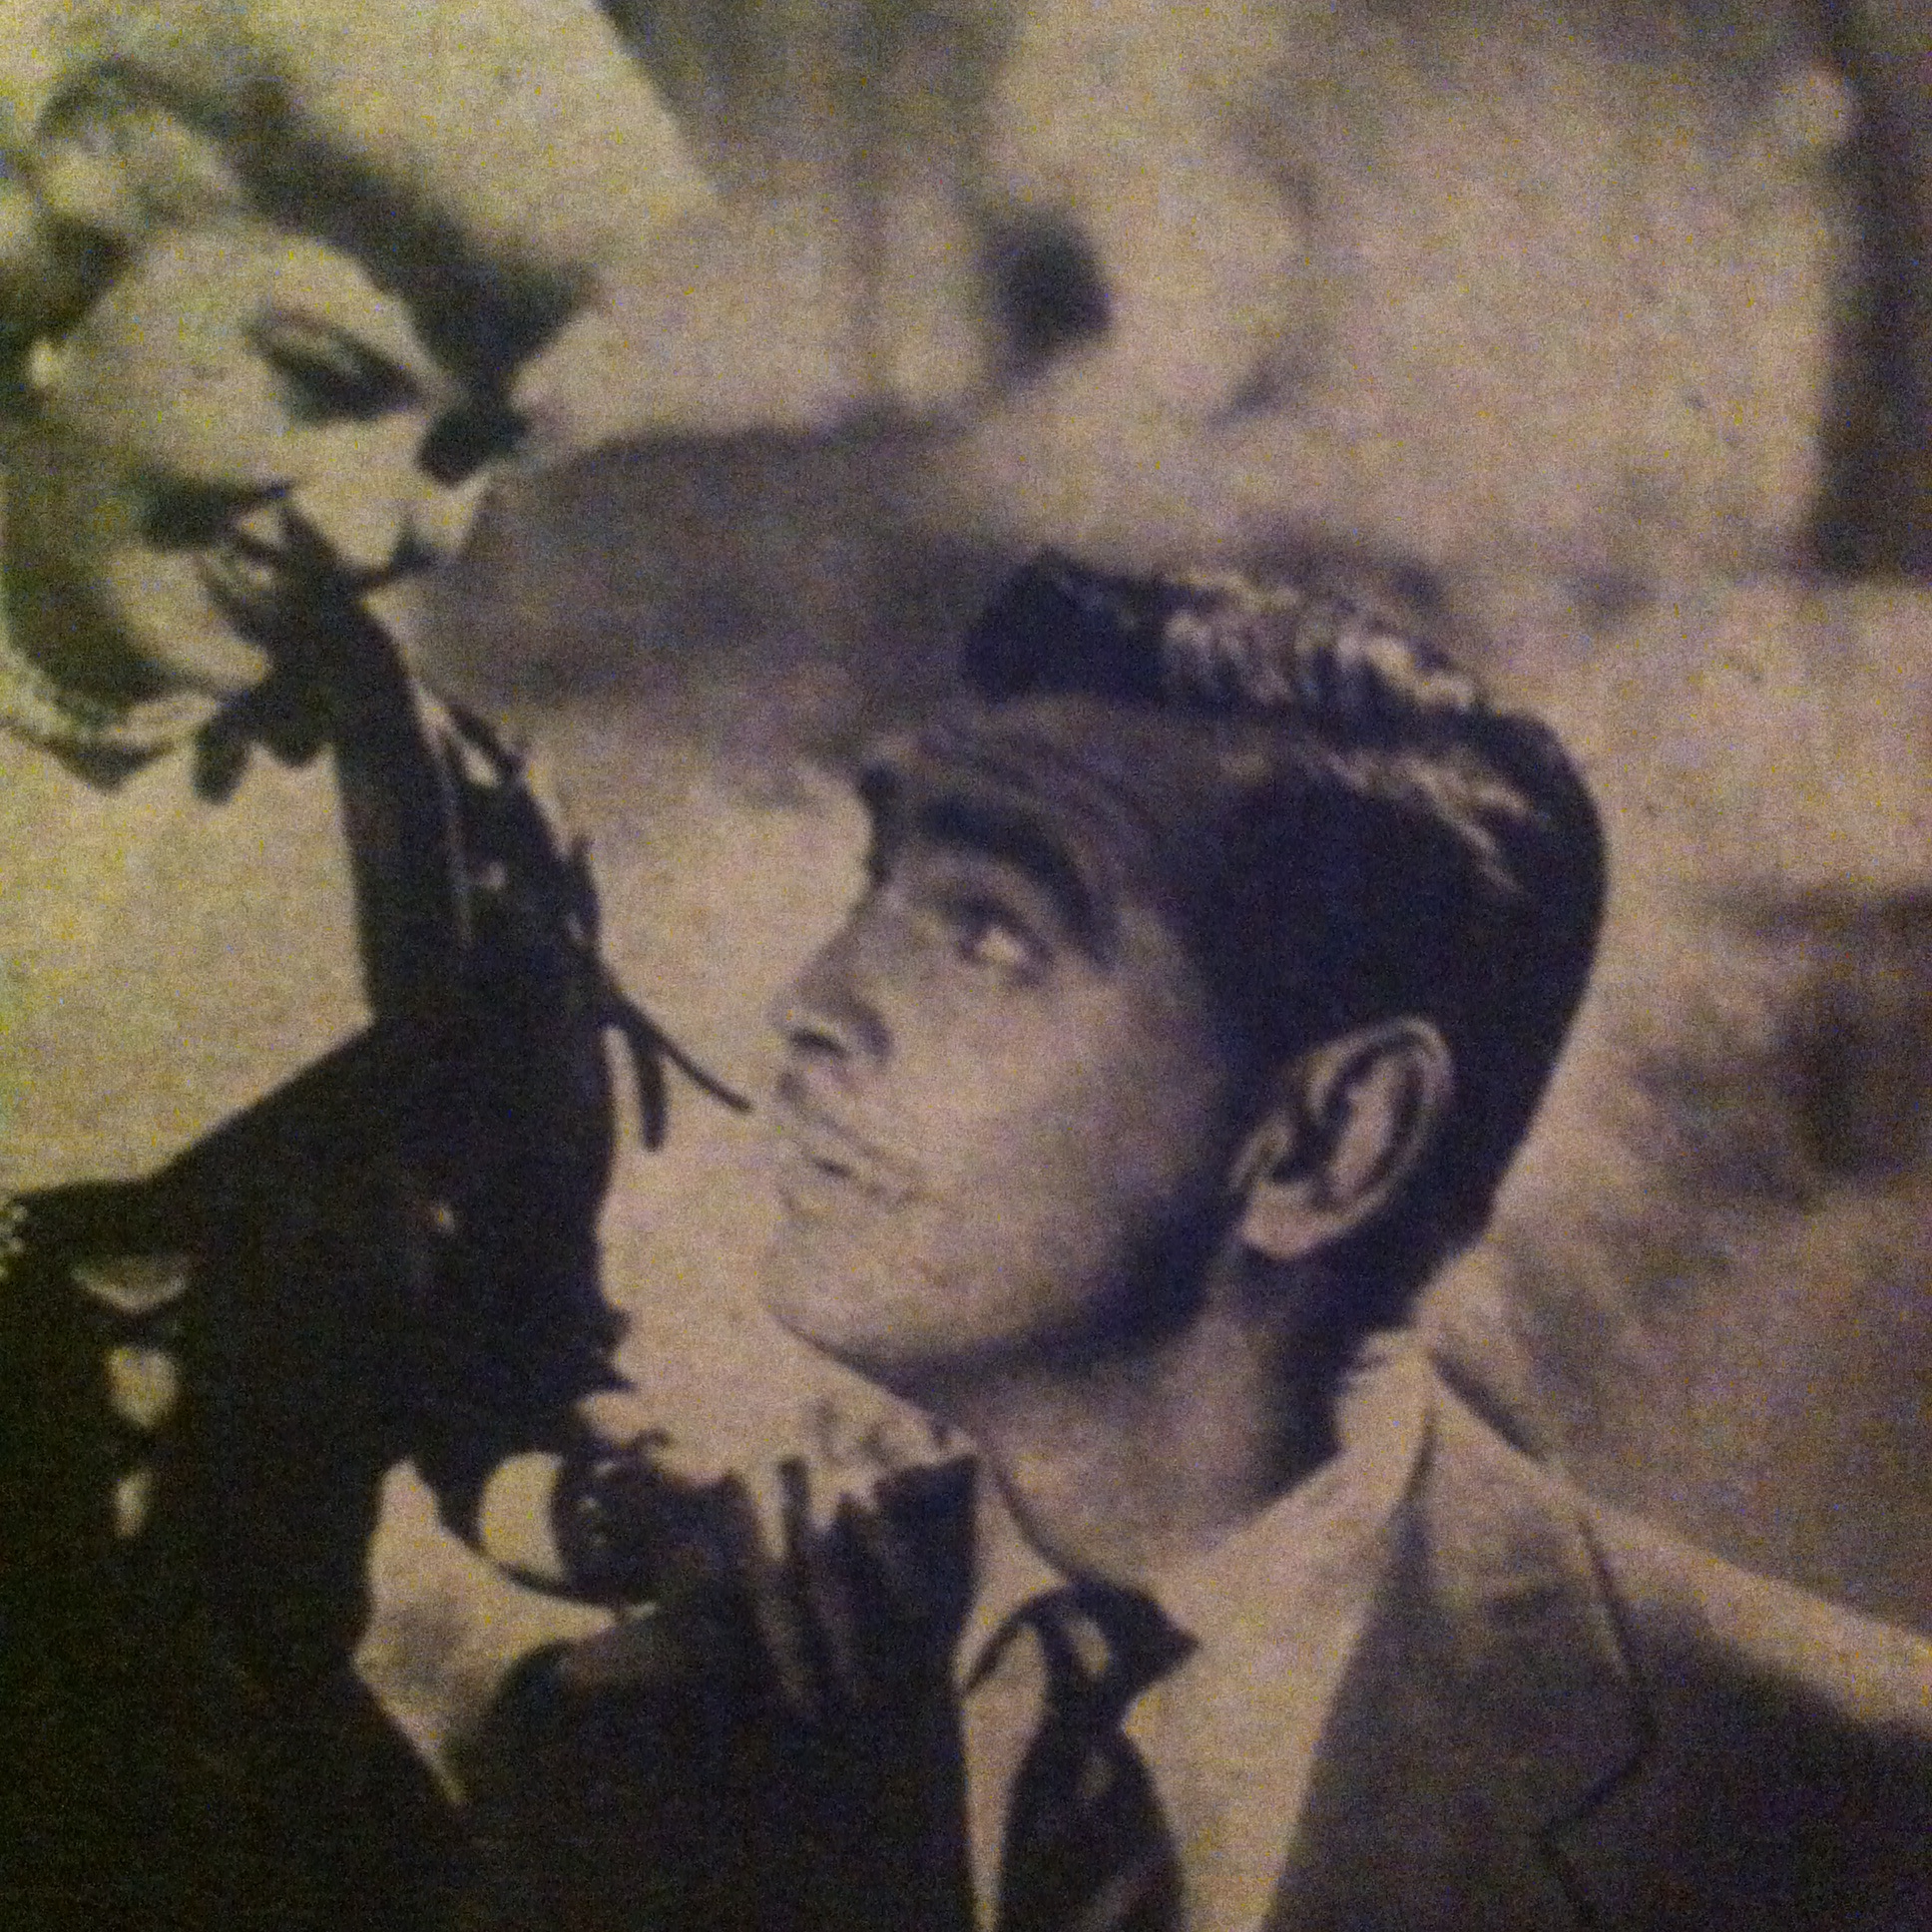 Clark Gable and Marilyn Maxwell in Key to the City (1950)